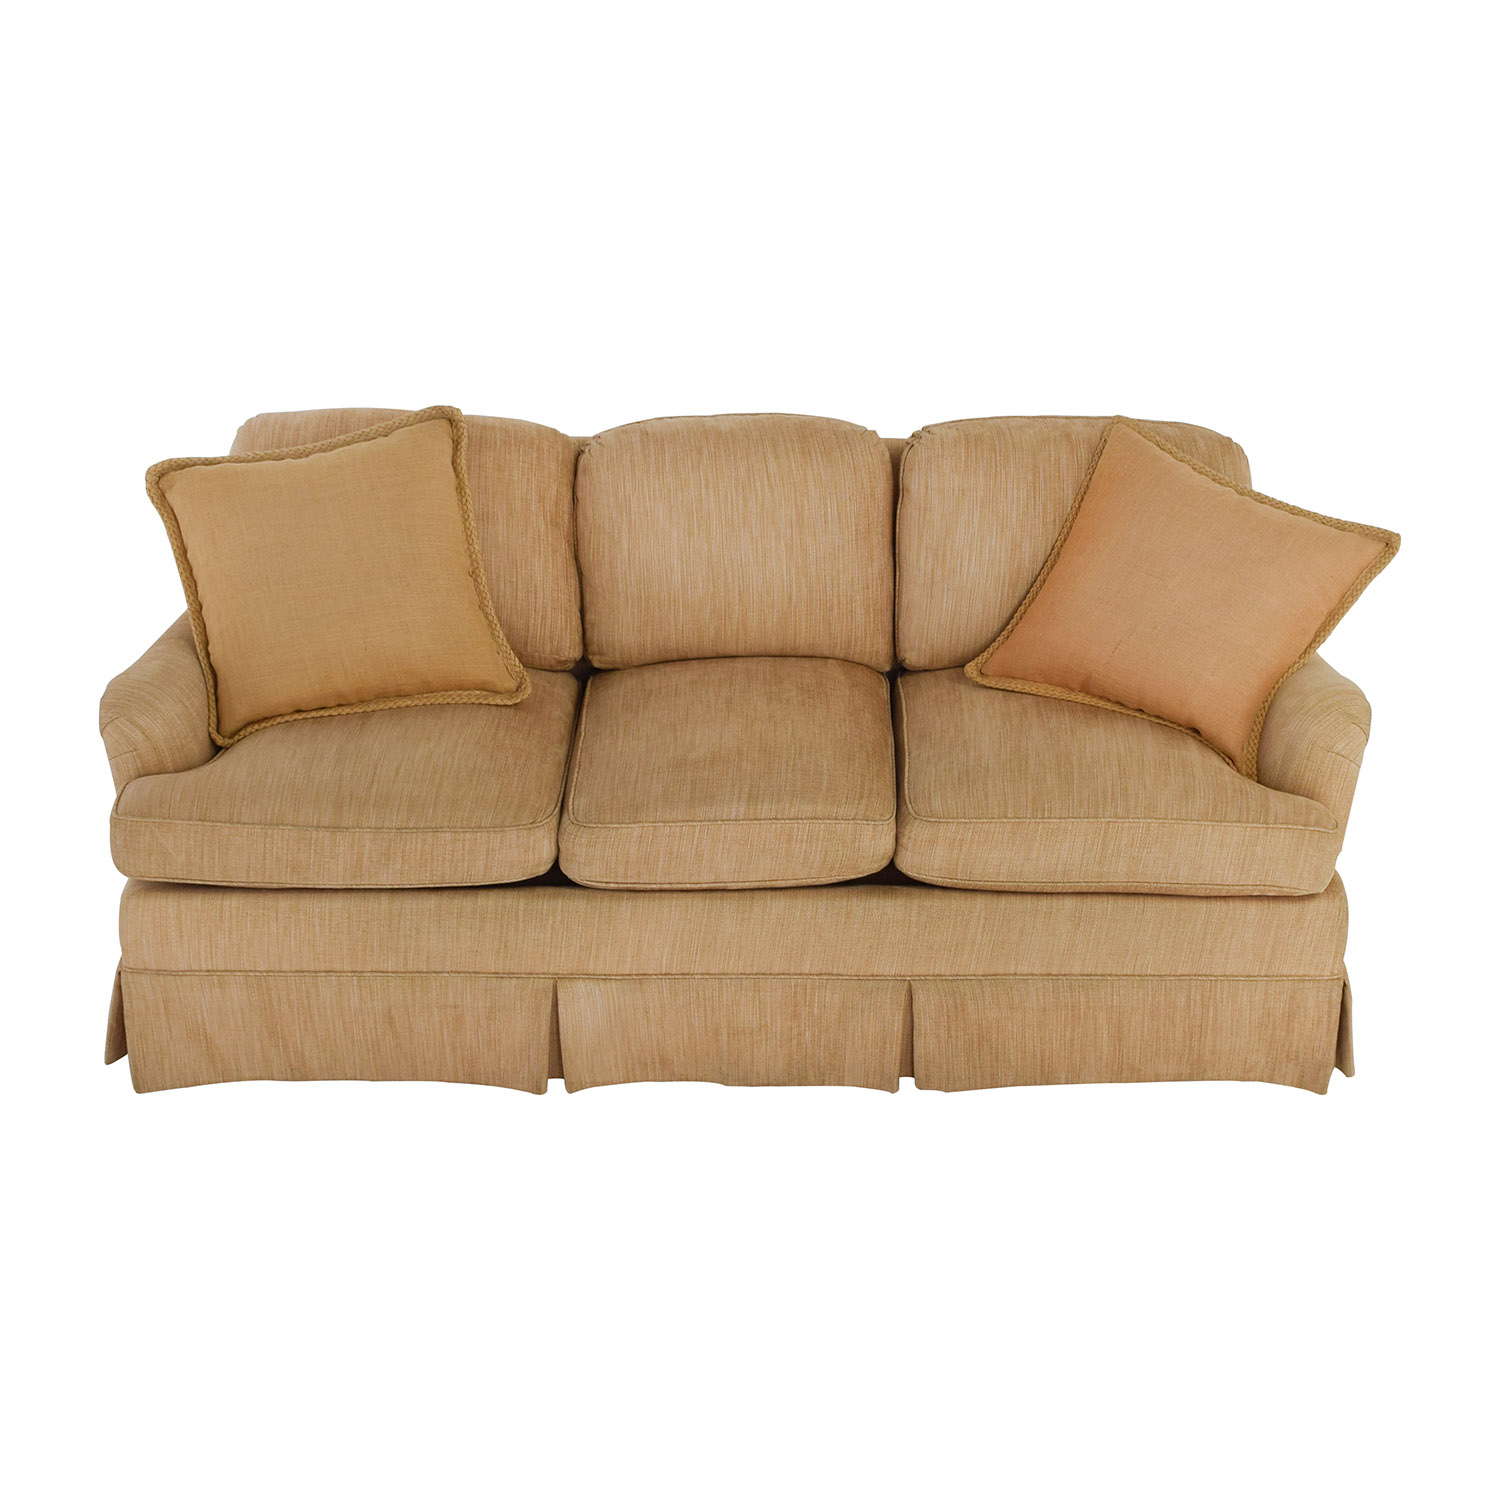 Tan Sofas 2 Pcs Transitional Style Tan Sofa Set Sm8110 Fabric Sofas Thesofa